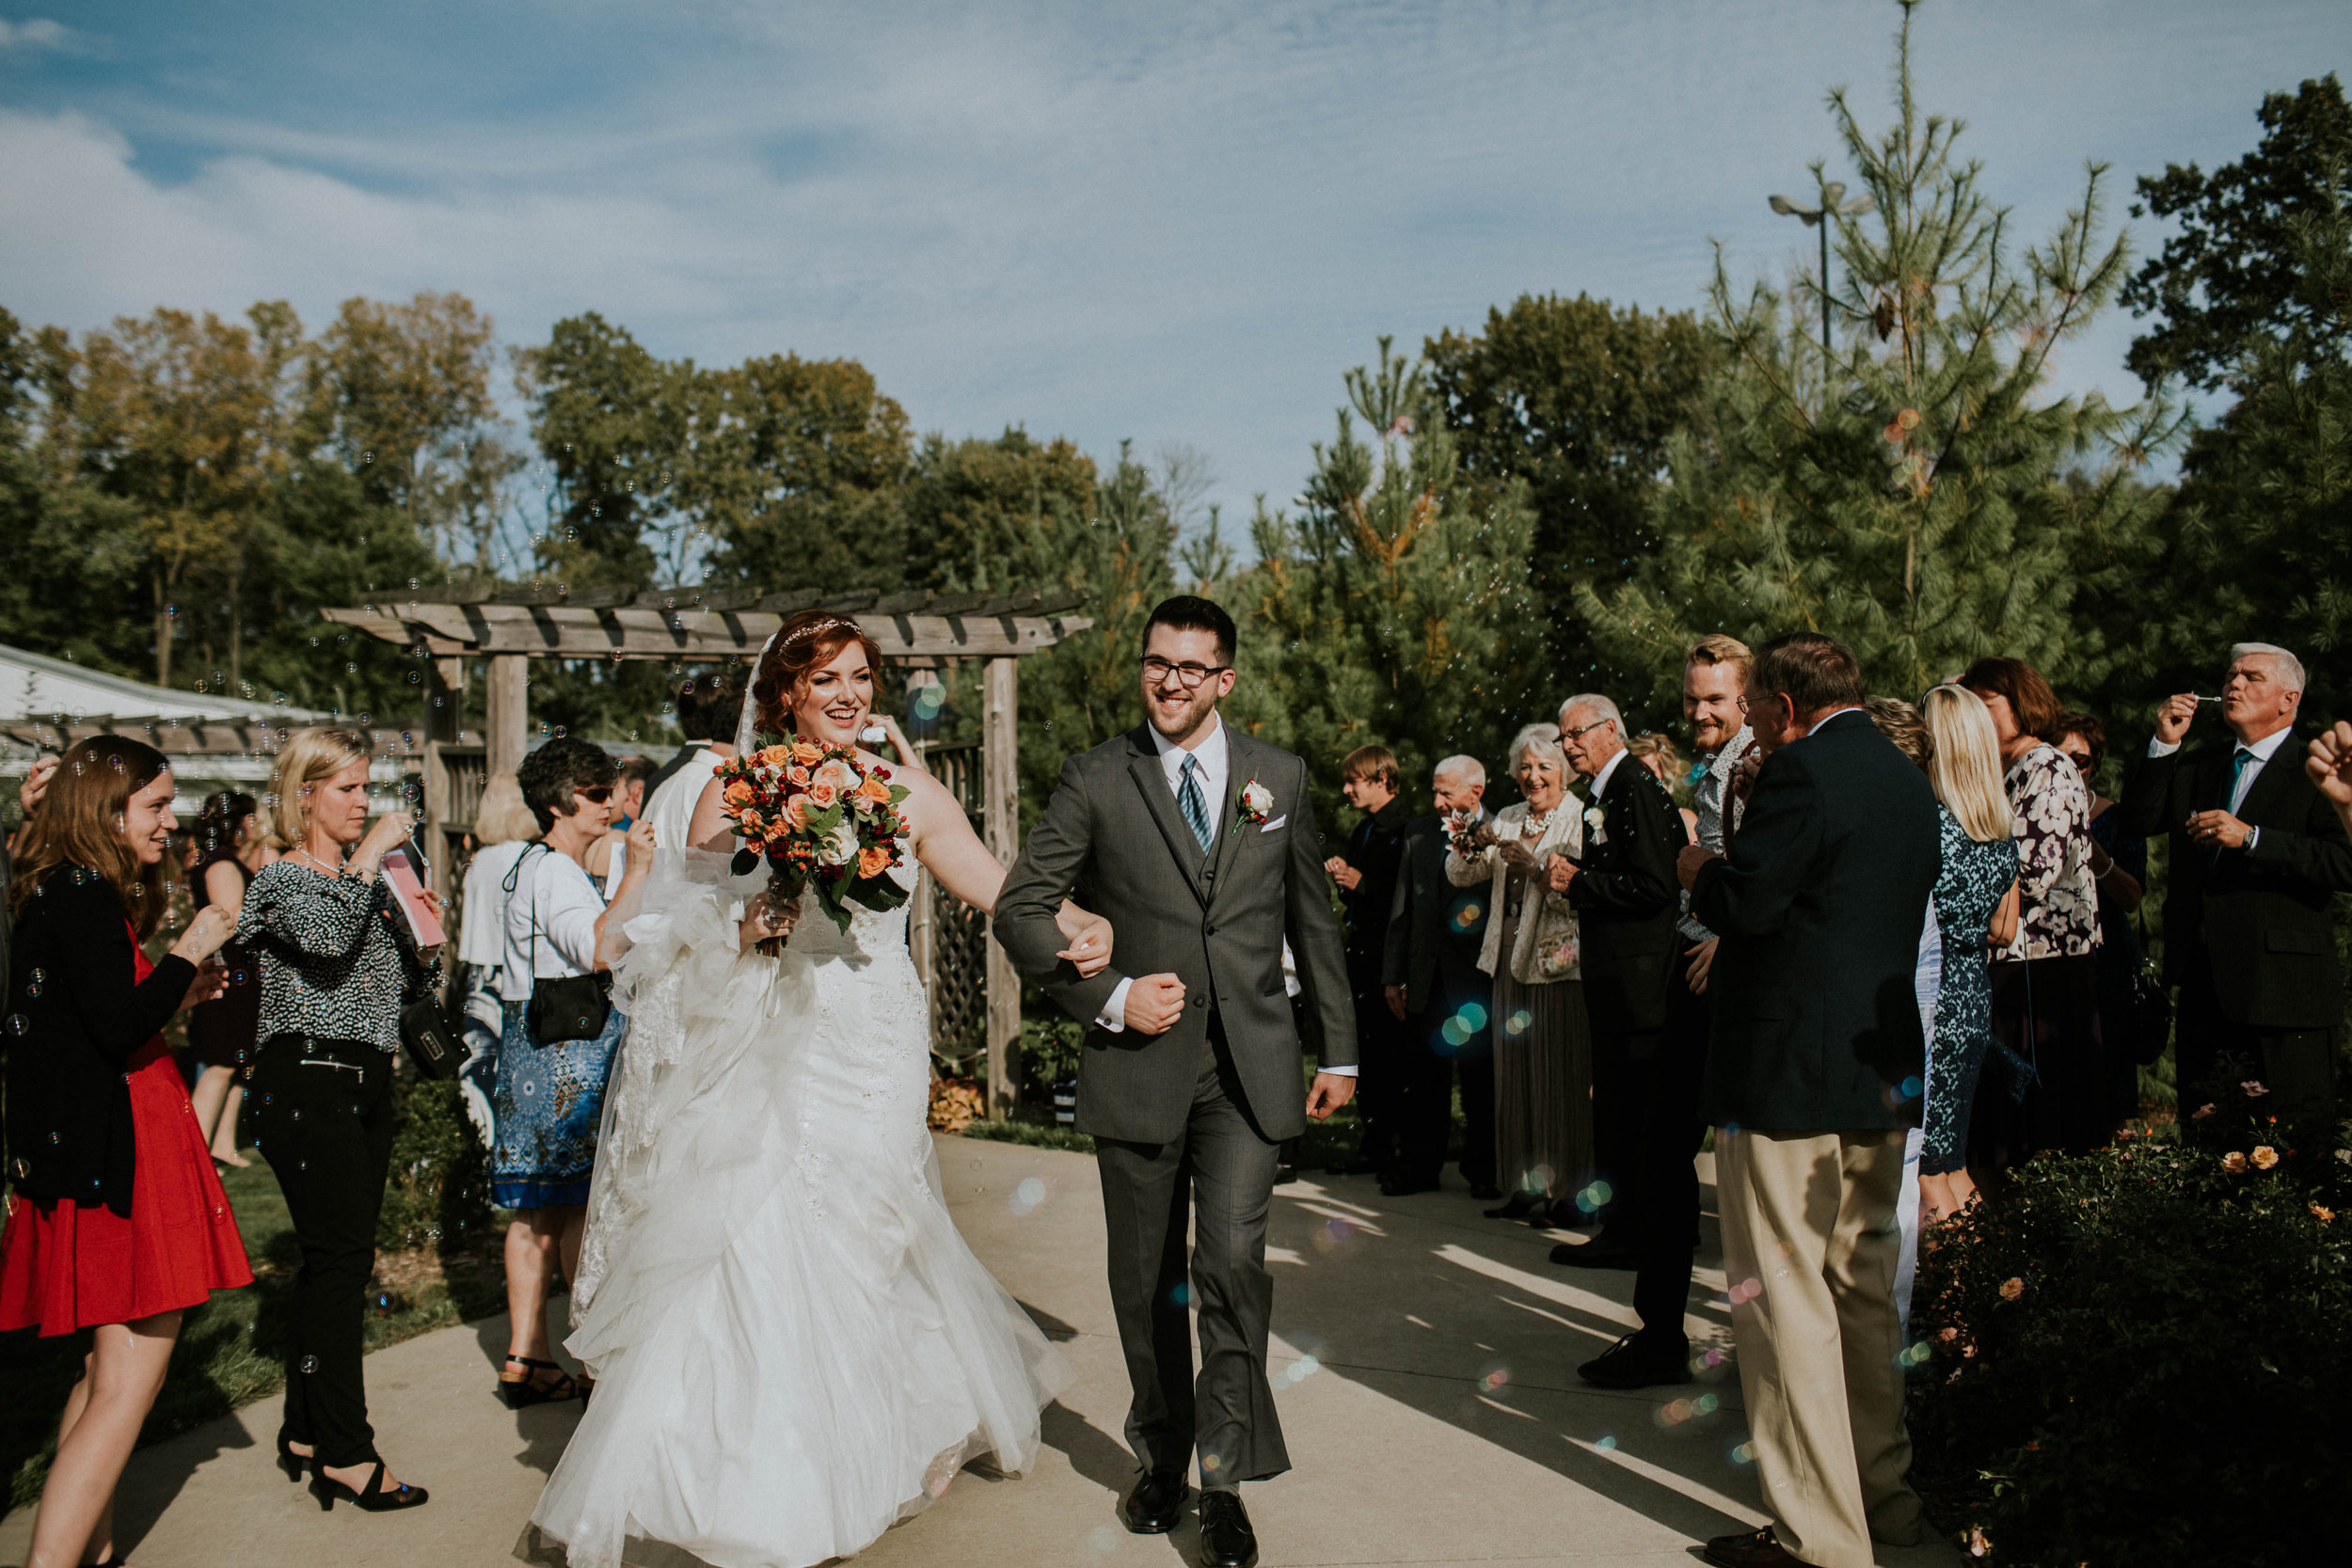 Waters edge louisville ohio romantic wedding grace e jones photography62.jpg